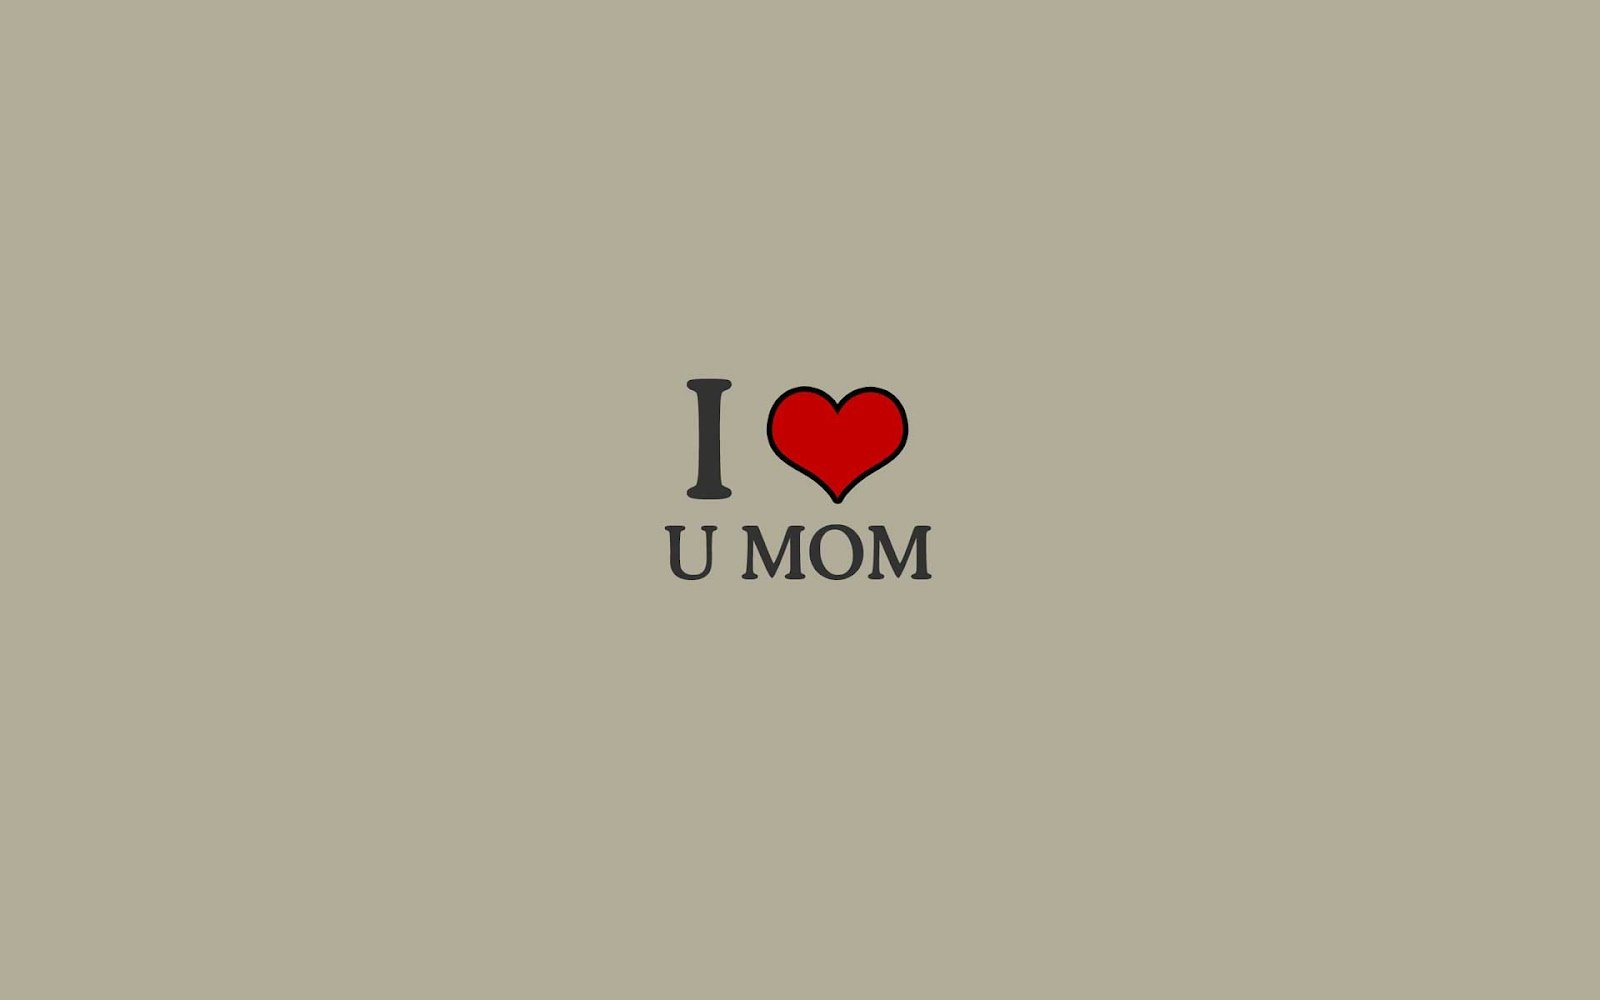 I Love Mom Wallpapers Images amp Pictures   Becuo 1600x1000